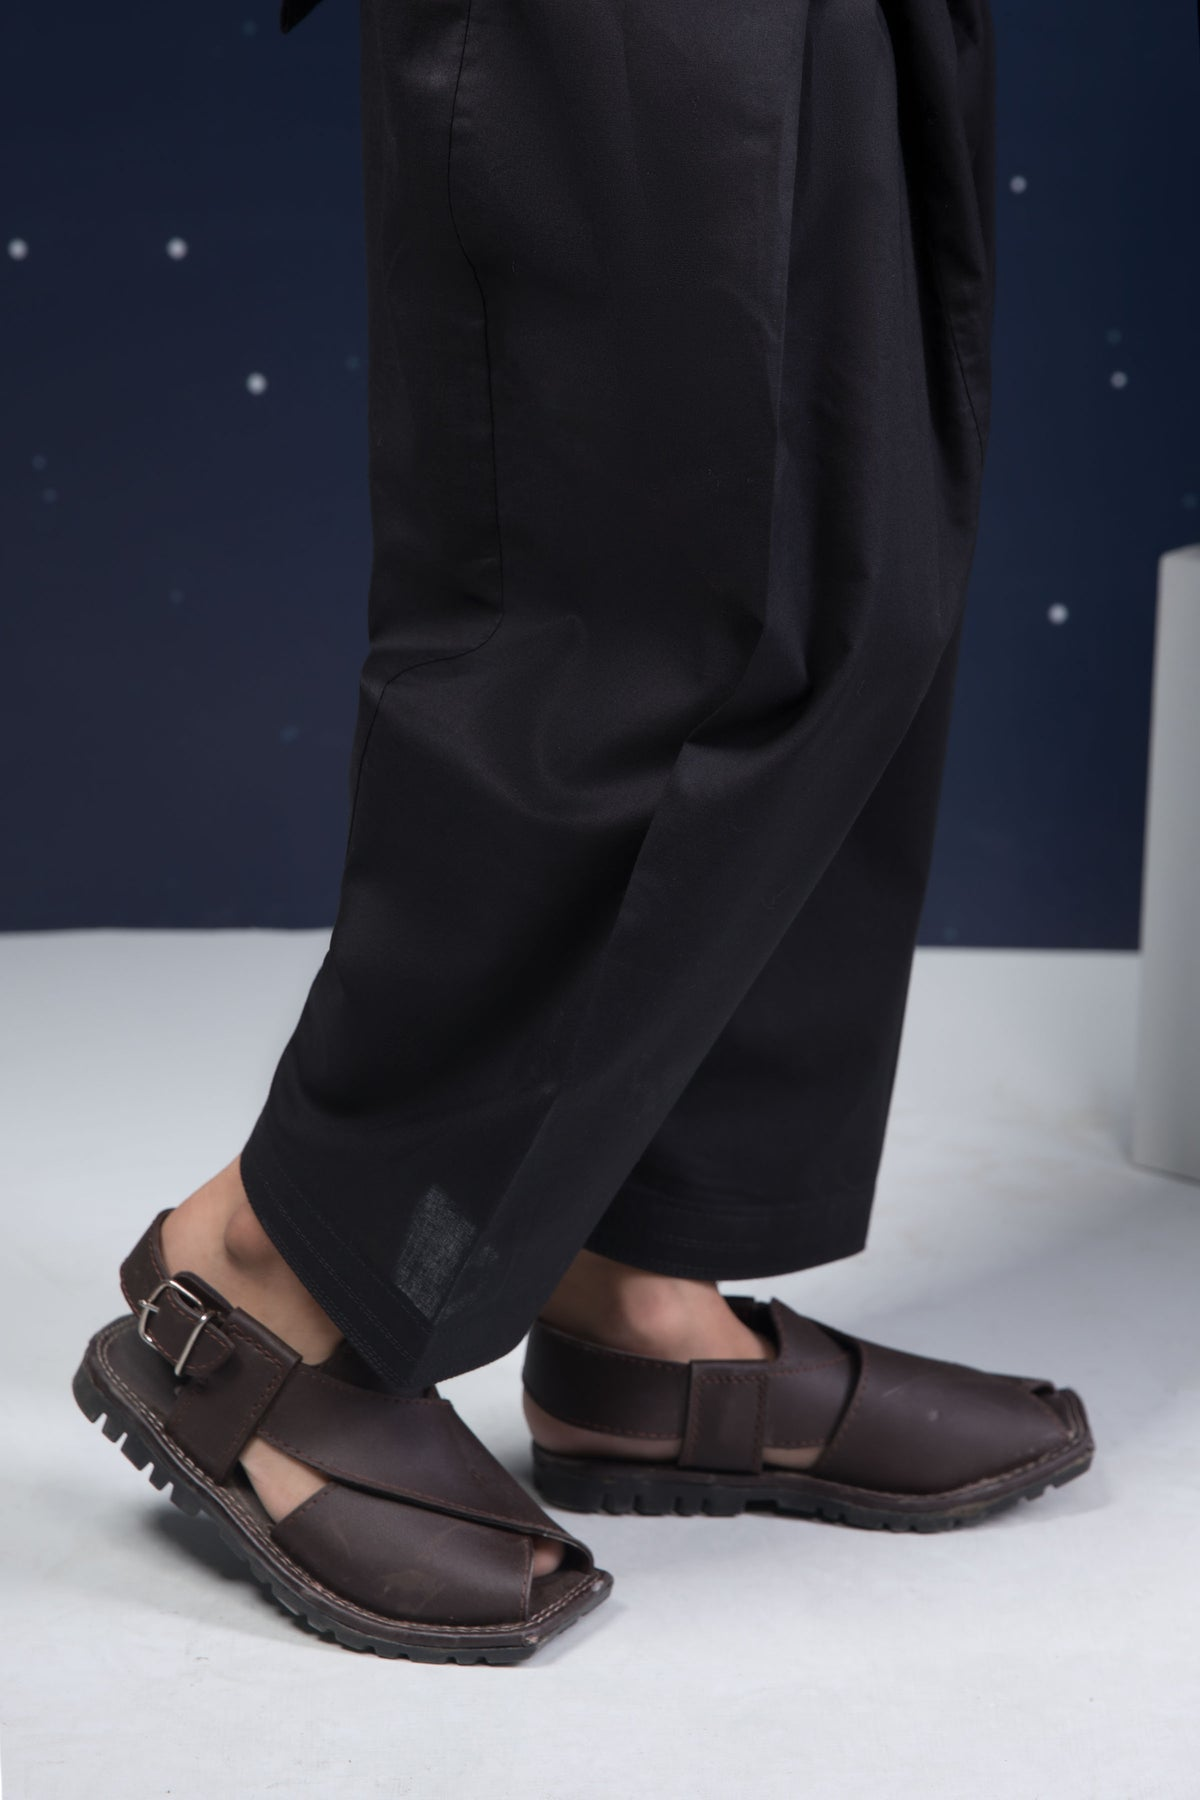 Plain Black Shalwar Kids